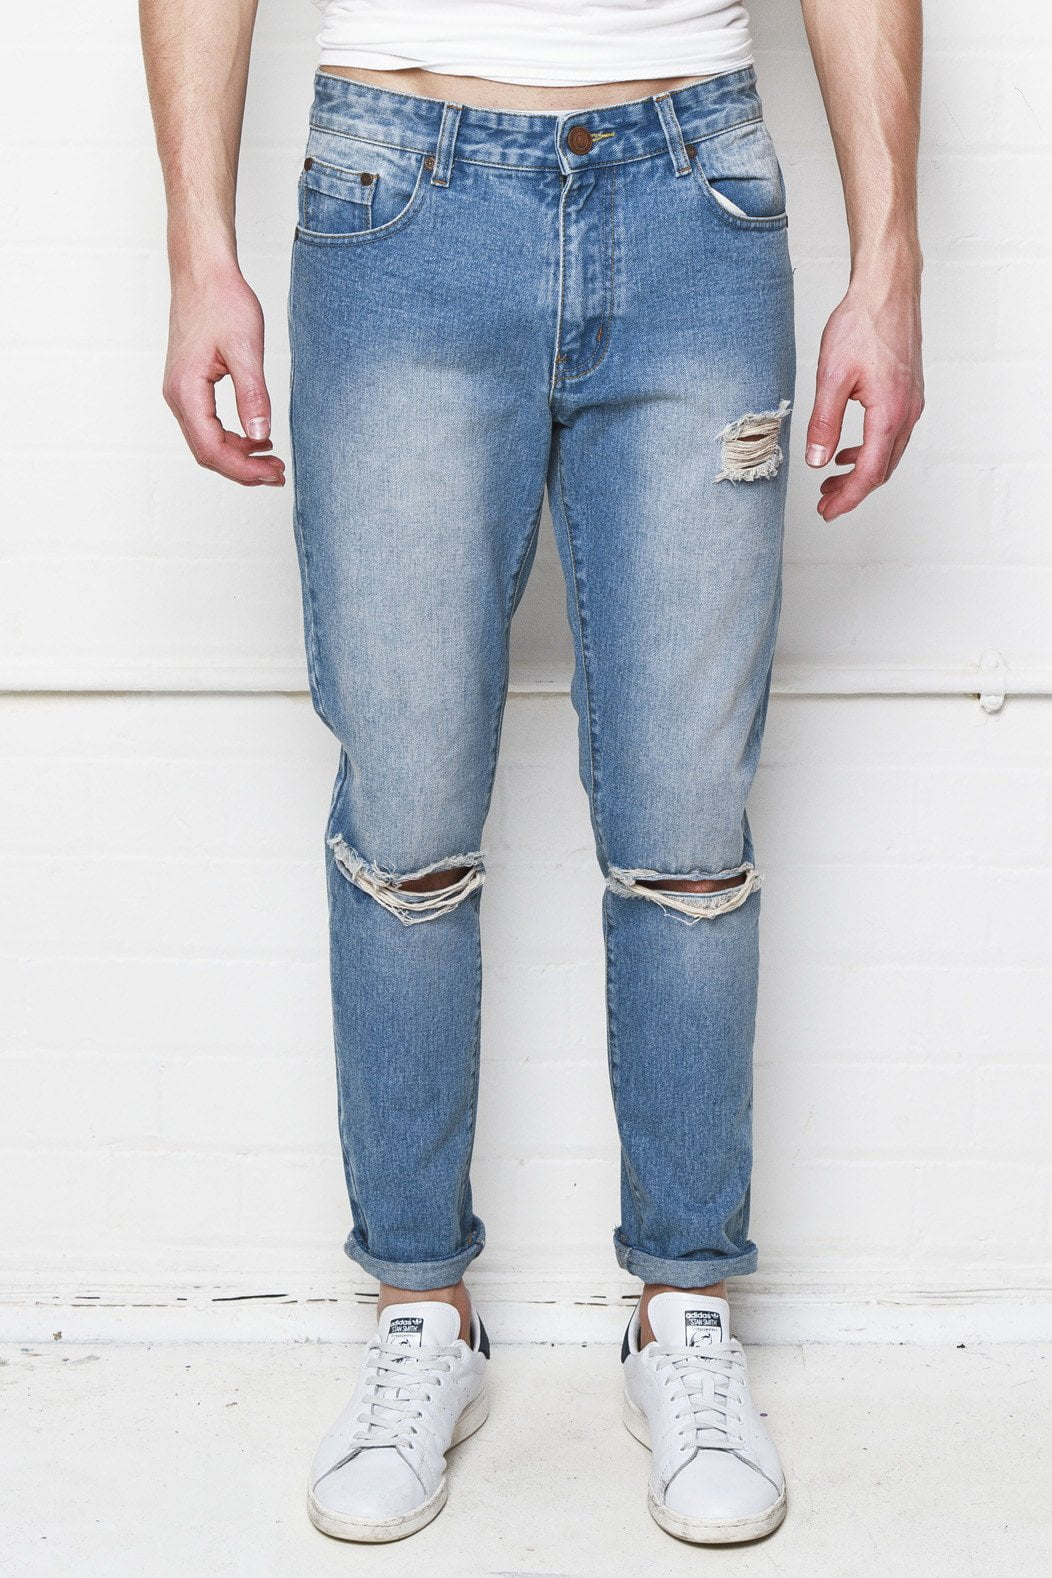 Charleston Stonewashed Straight Leg Jean With Distressing And Ripped Knee - Liquor N Poker  Liquor N Poker